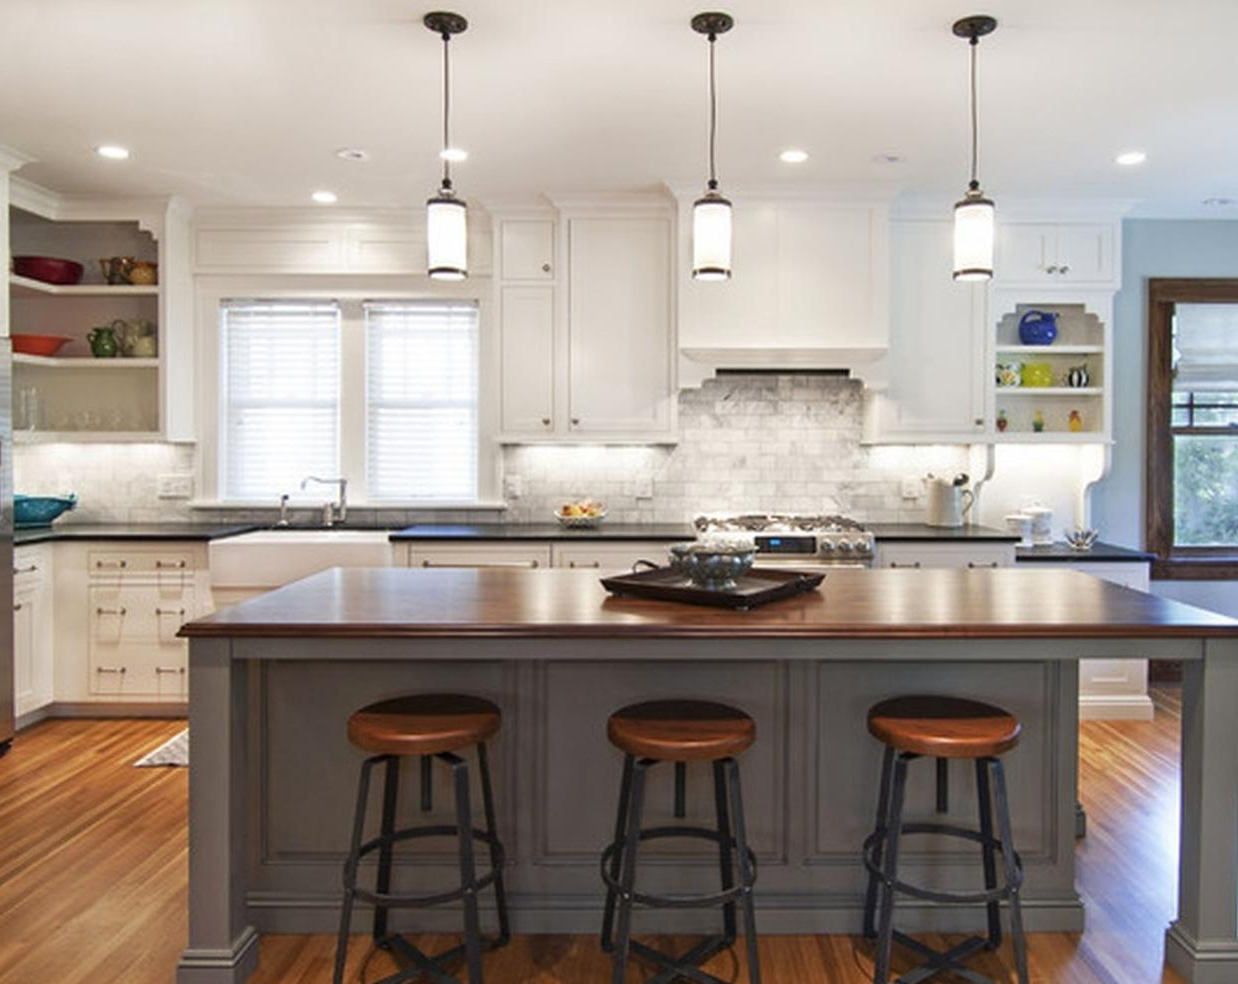 Kitchen Island Lighting With Current Gracelyn 8 Light Kitchen Island Pendants (View 15 of 25)